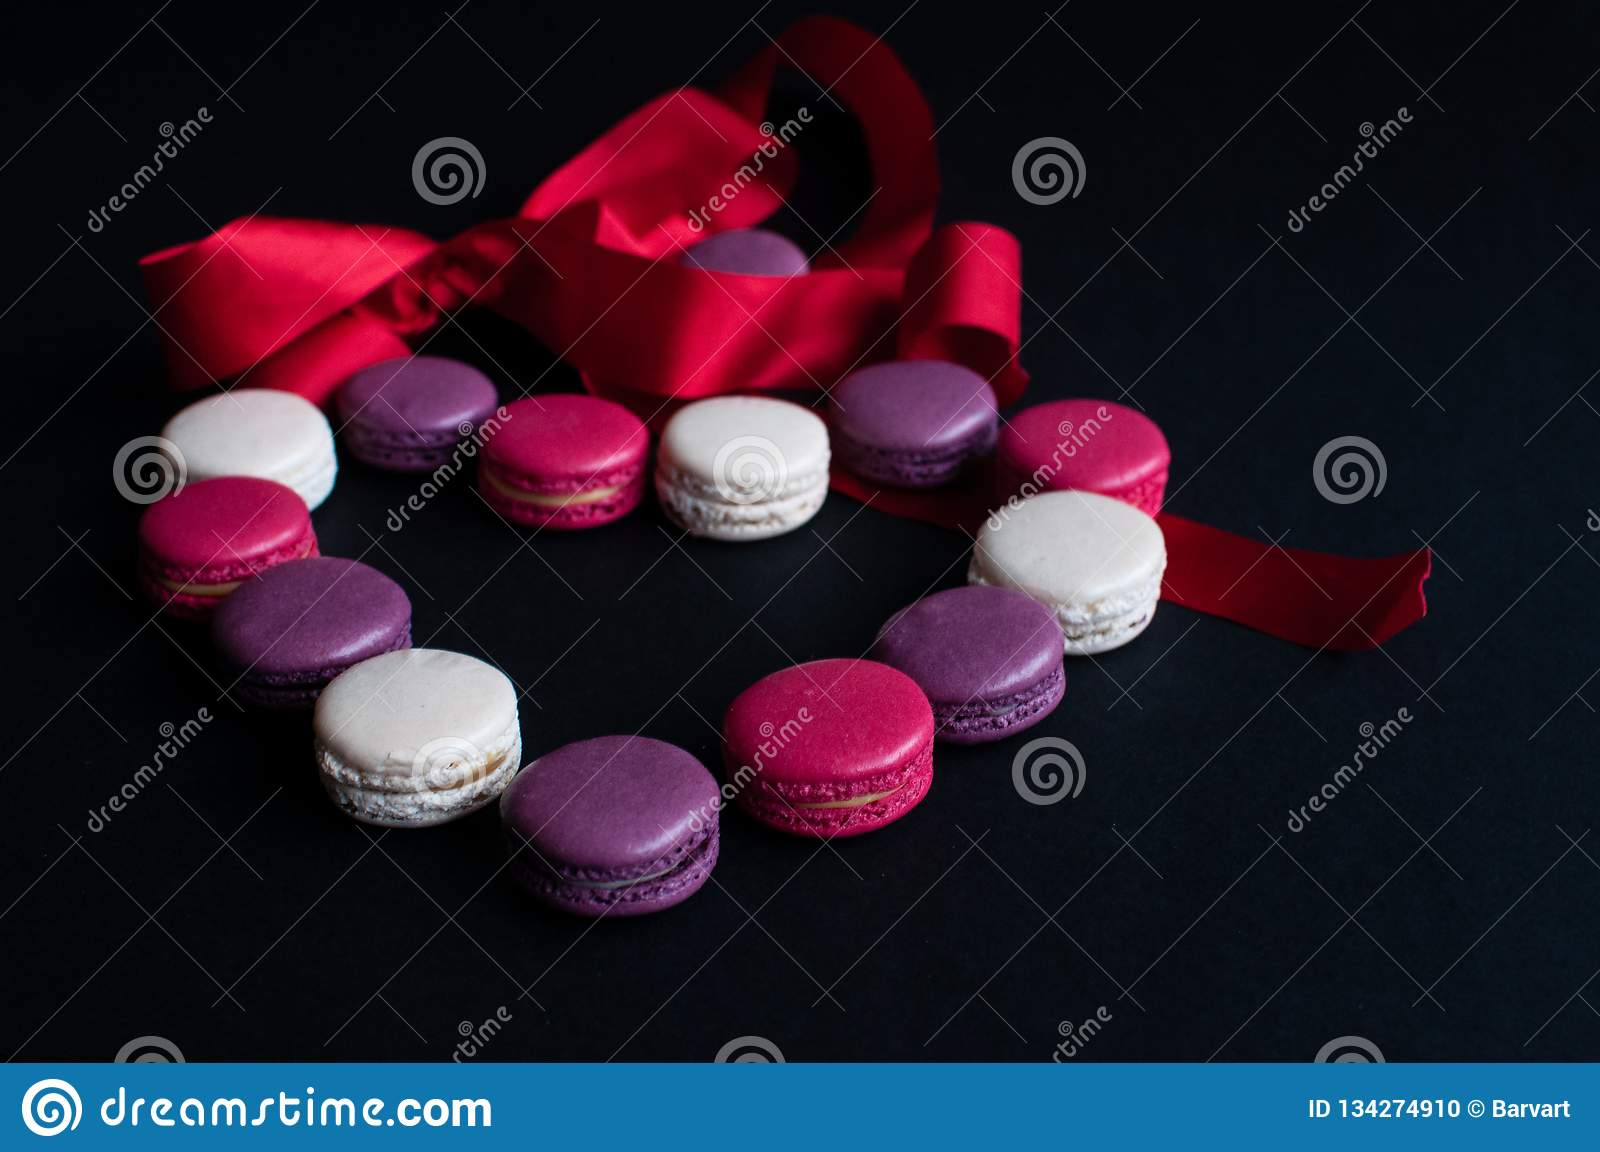 Macaroon laid out on a black background in the form of a heart with red ribbon. colorful almond cookies, pastel colors. Present